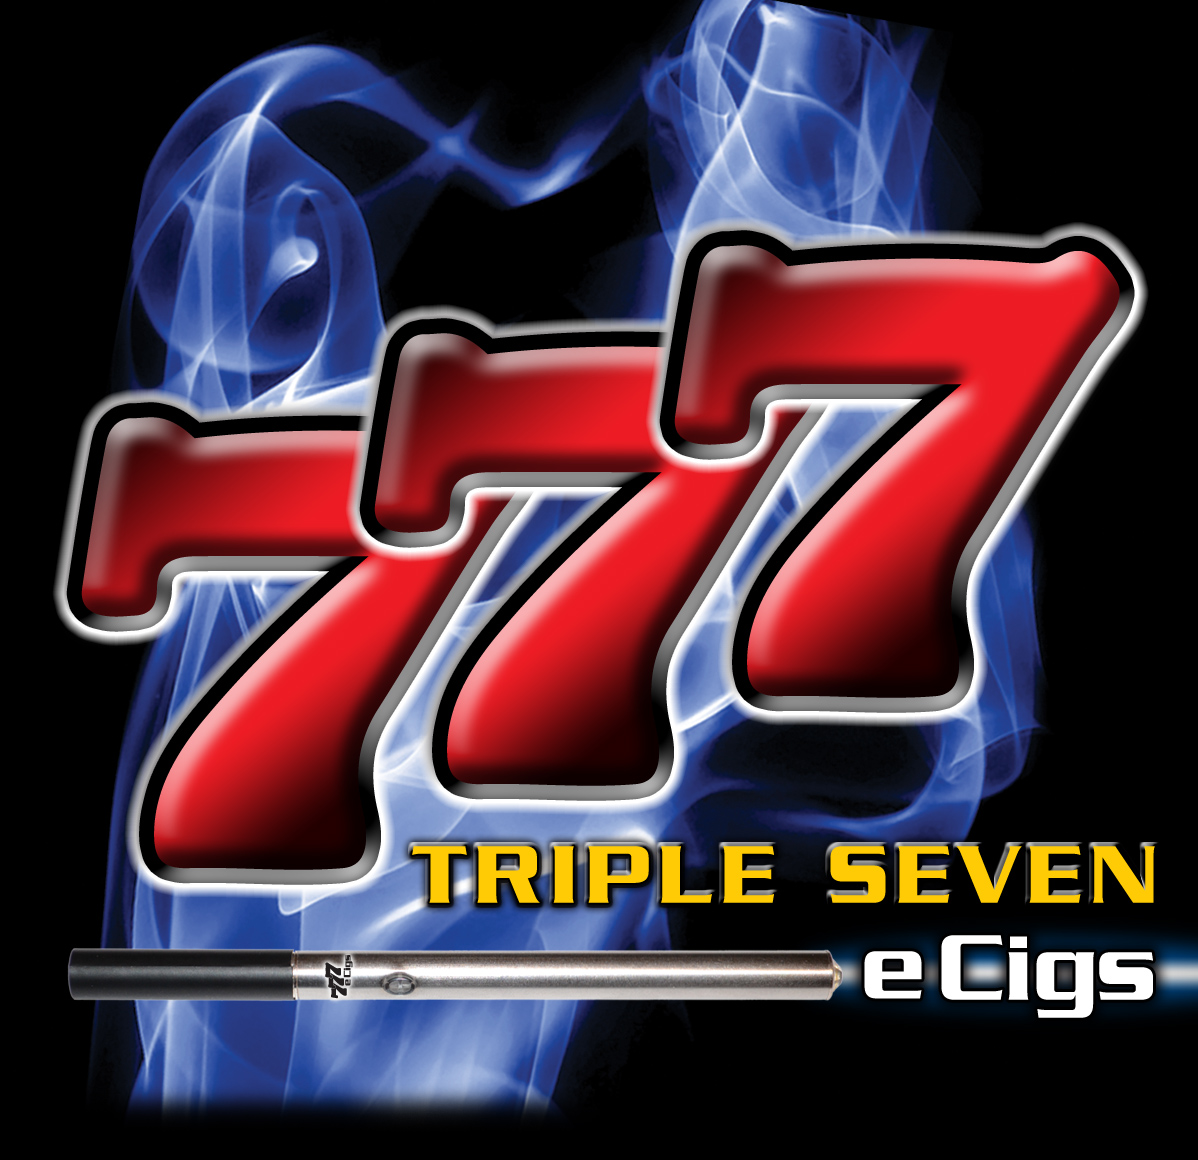 777 E-cig Review/Giveaway - Life With Kathy